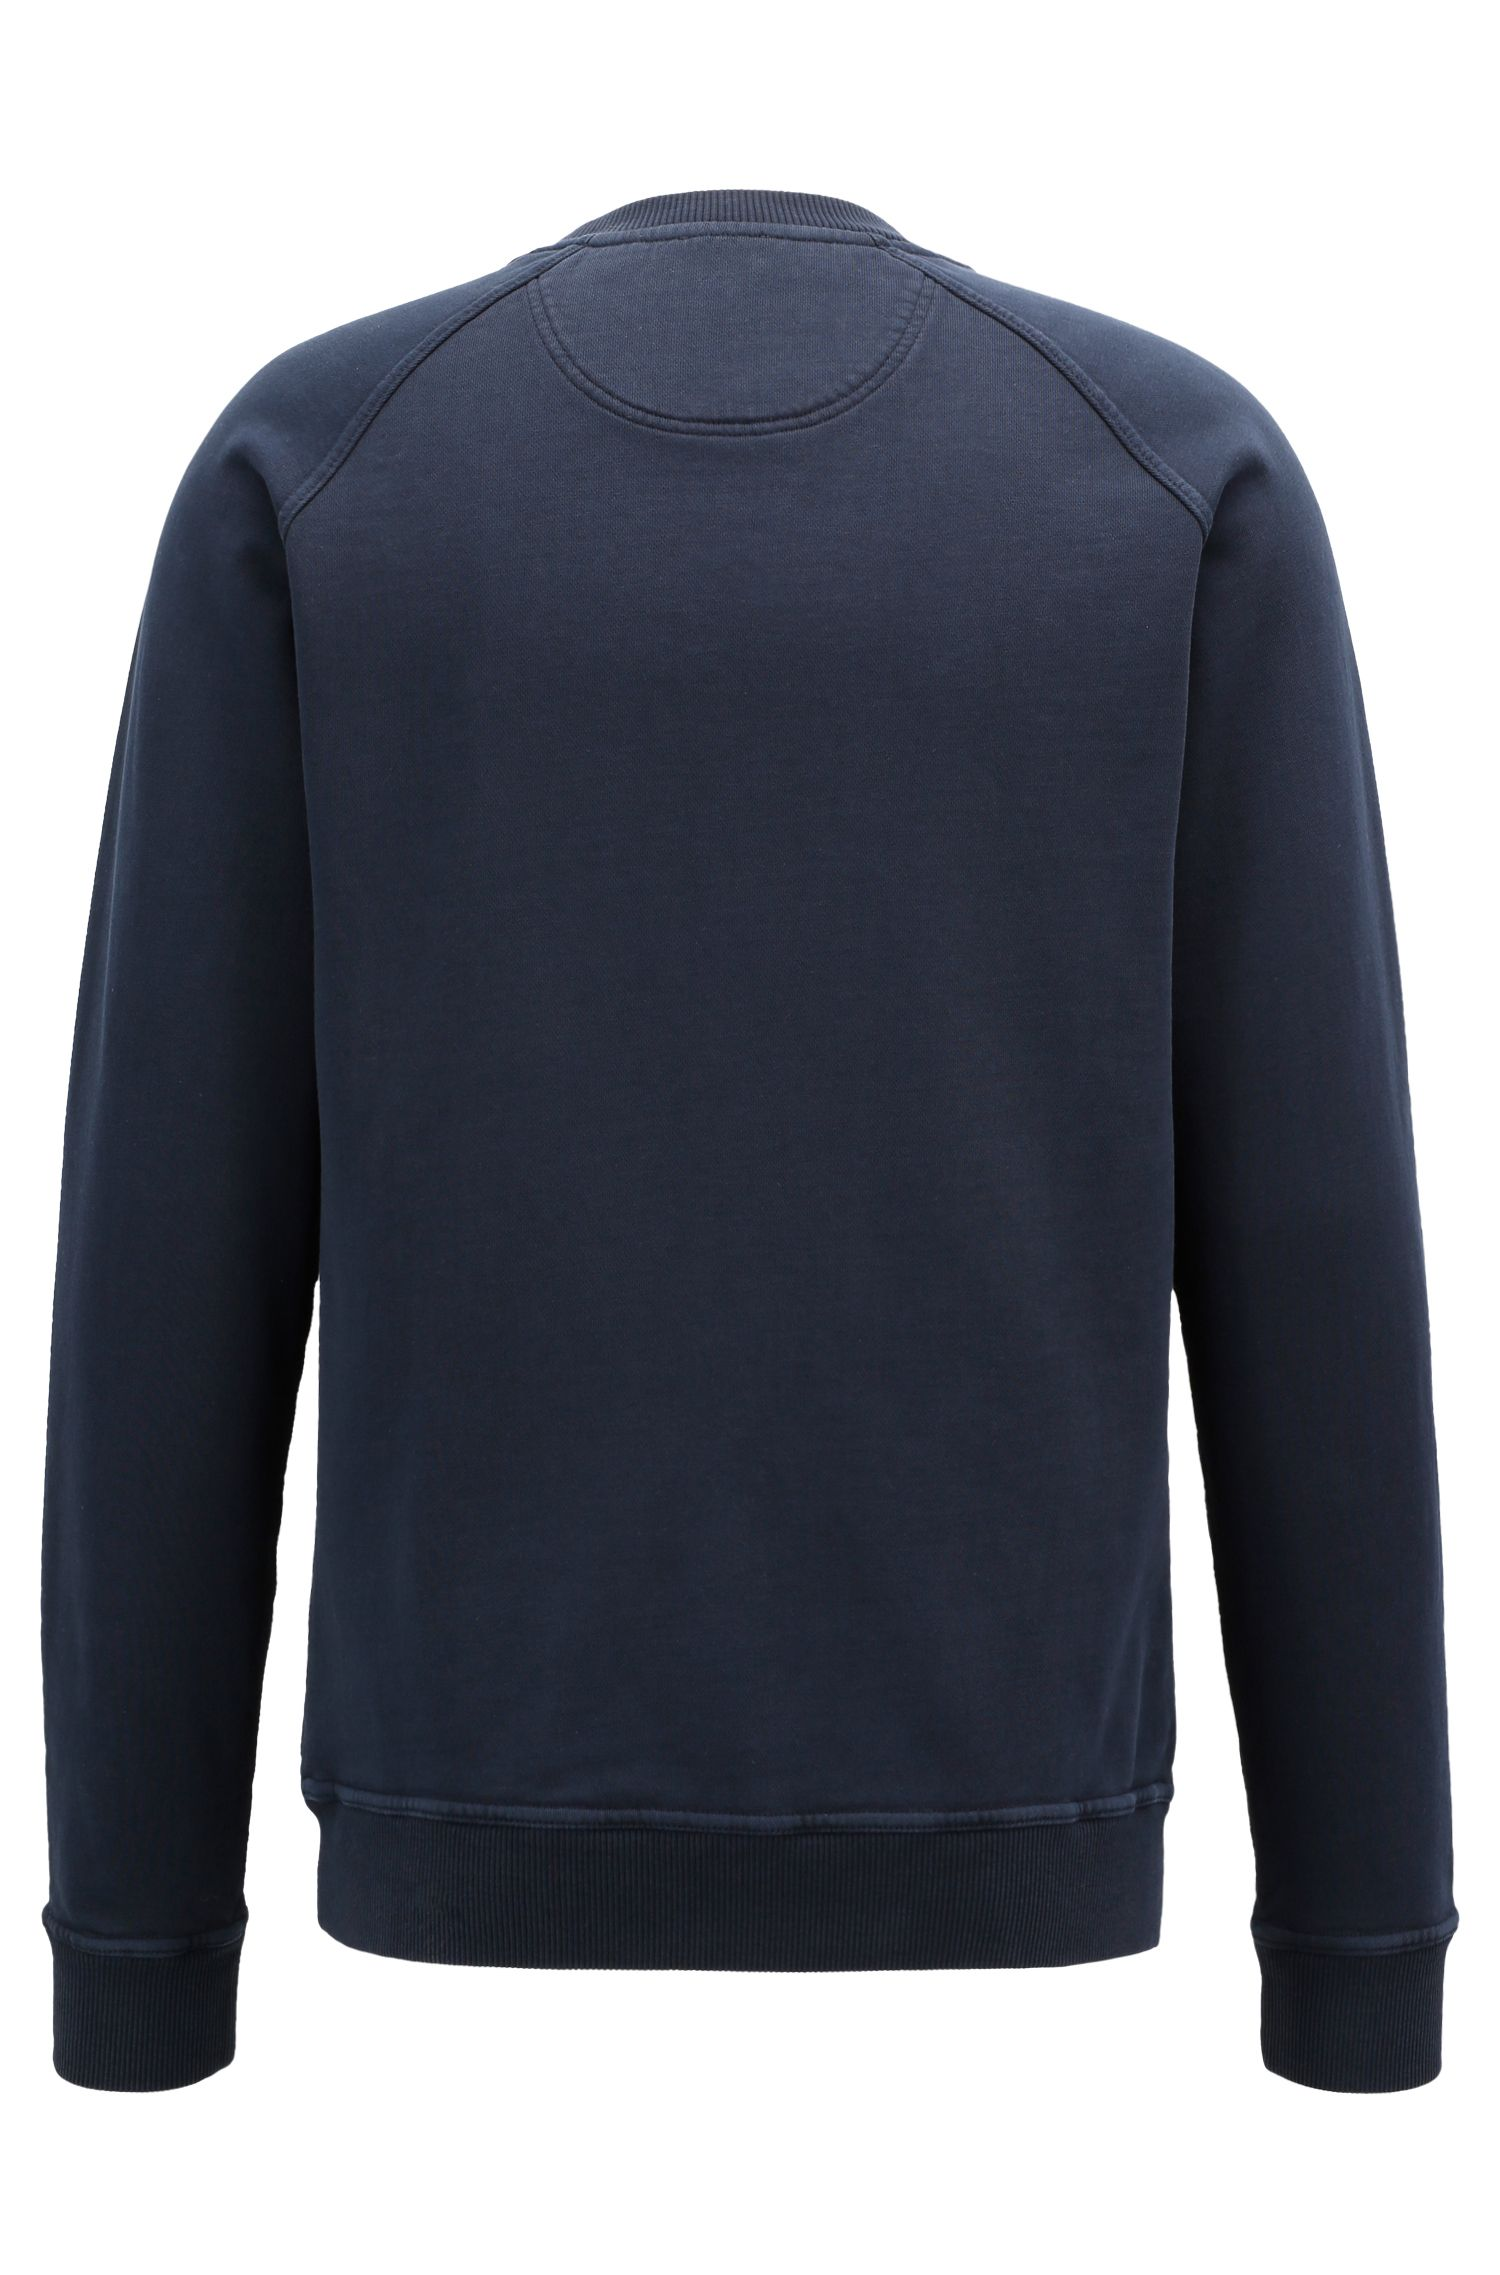 Sweat à col ras-du-cou en molleton French Terry recot²®, Bleu foncé